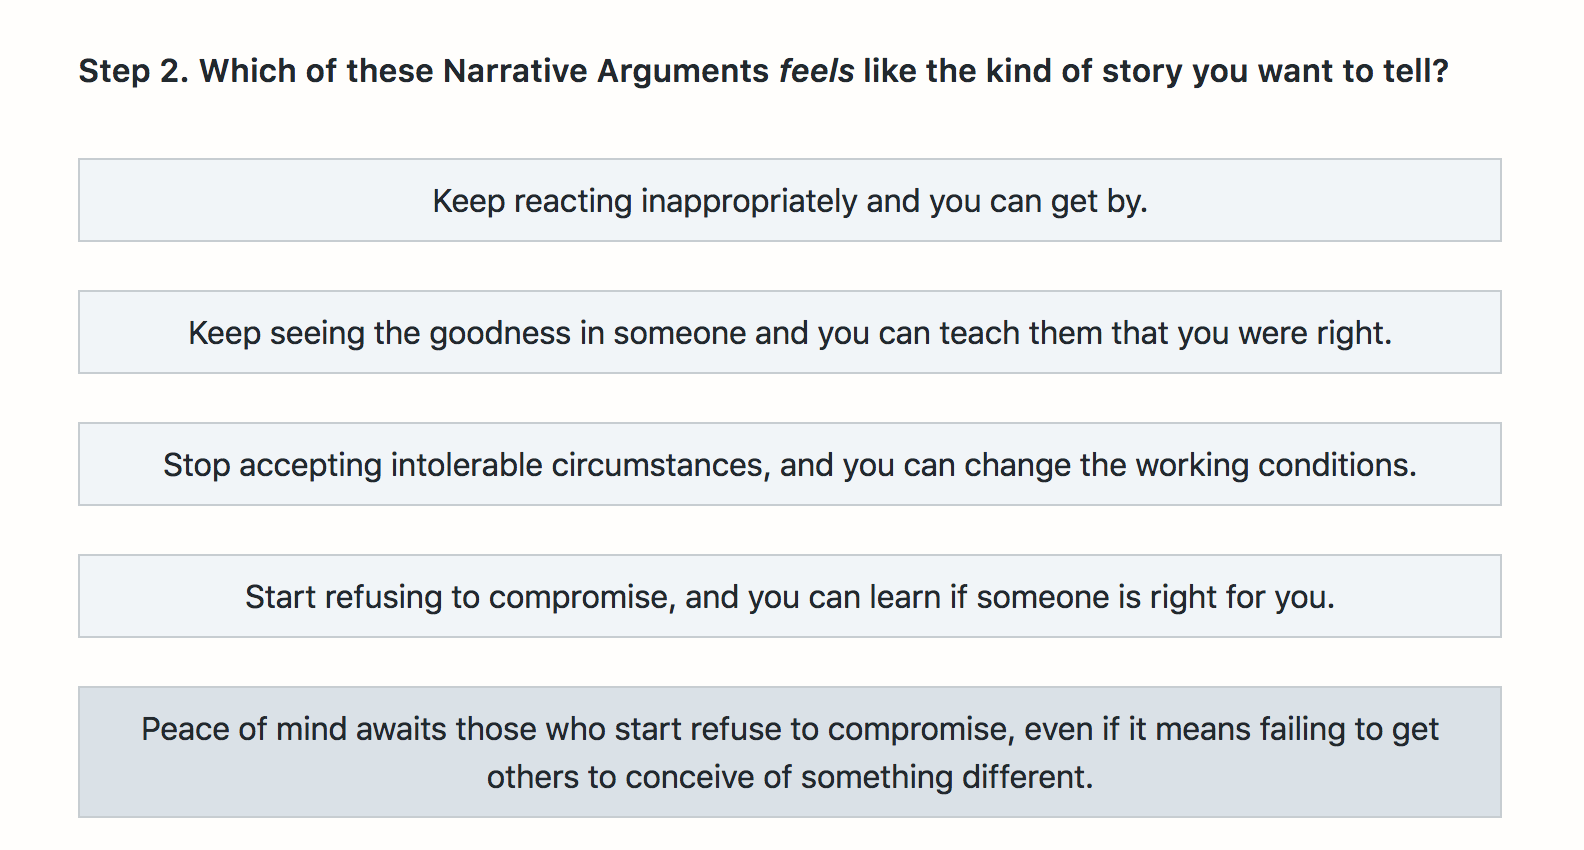 Narrative Arguments